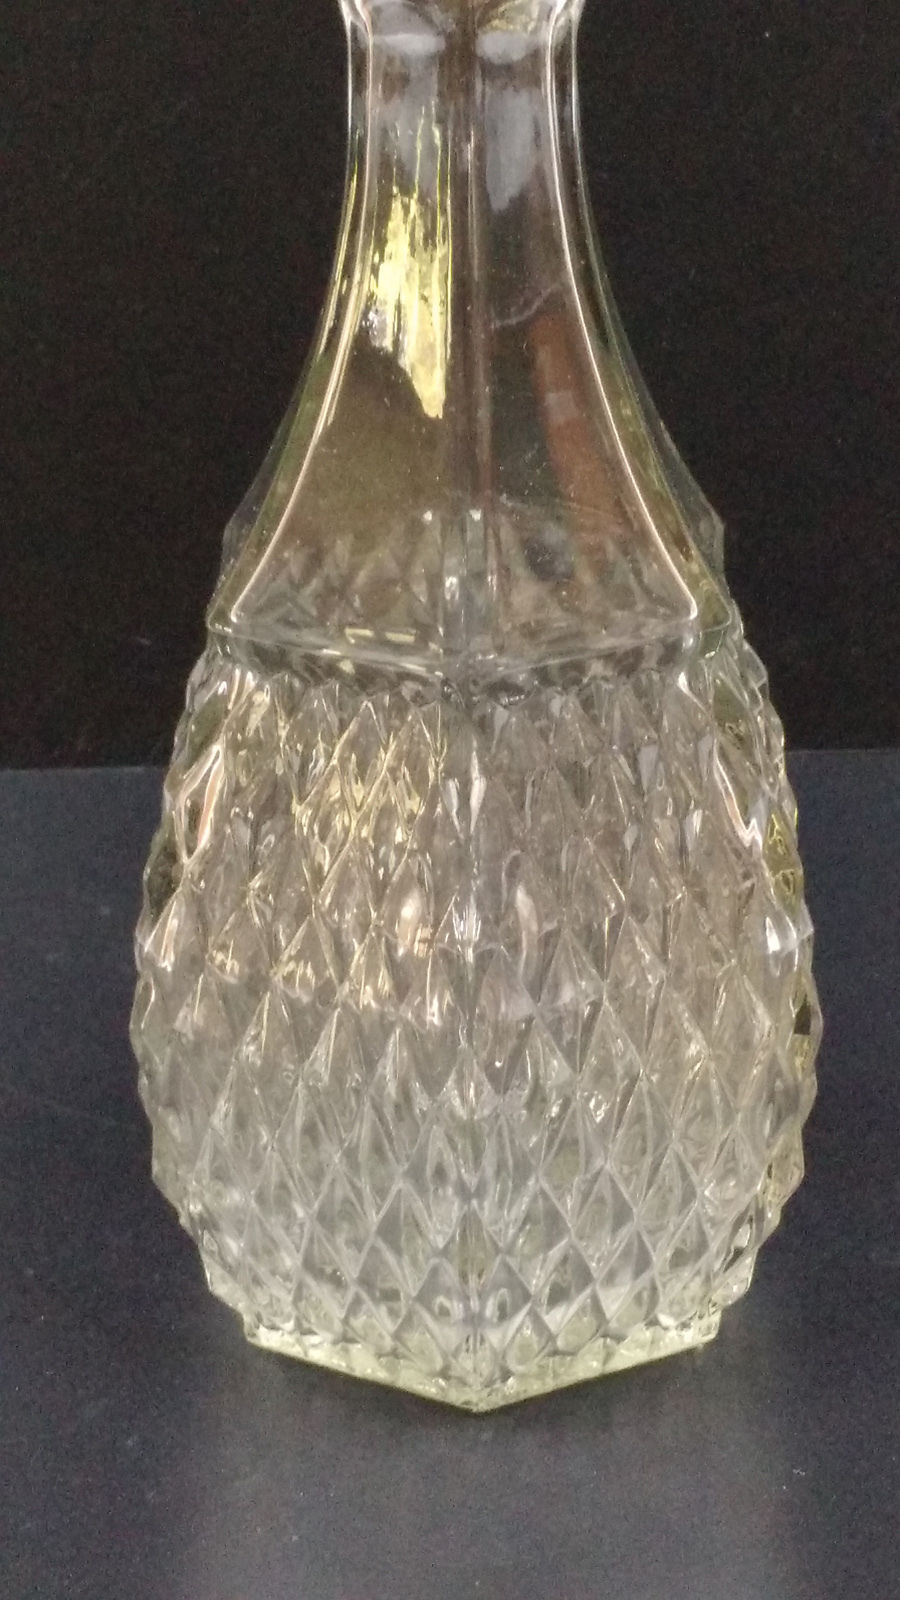 VTG Indiana Glass Company Crystal Clear Diamond Point Decanter & Stopper 24oz